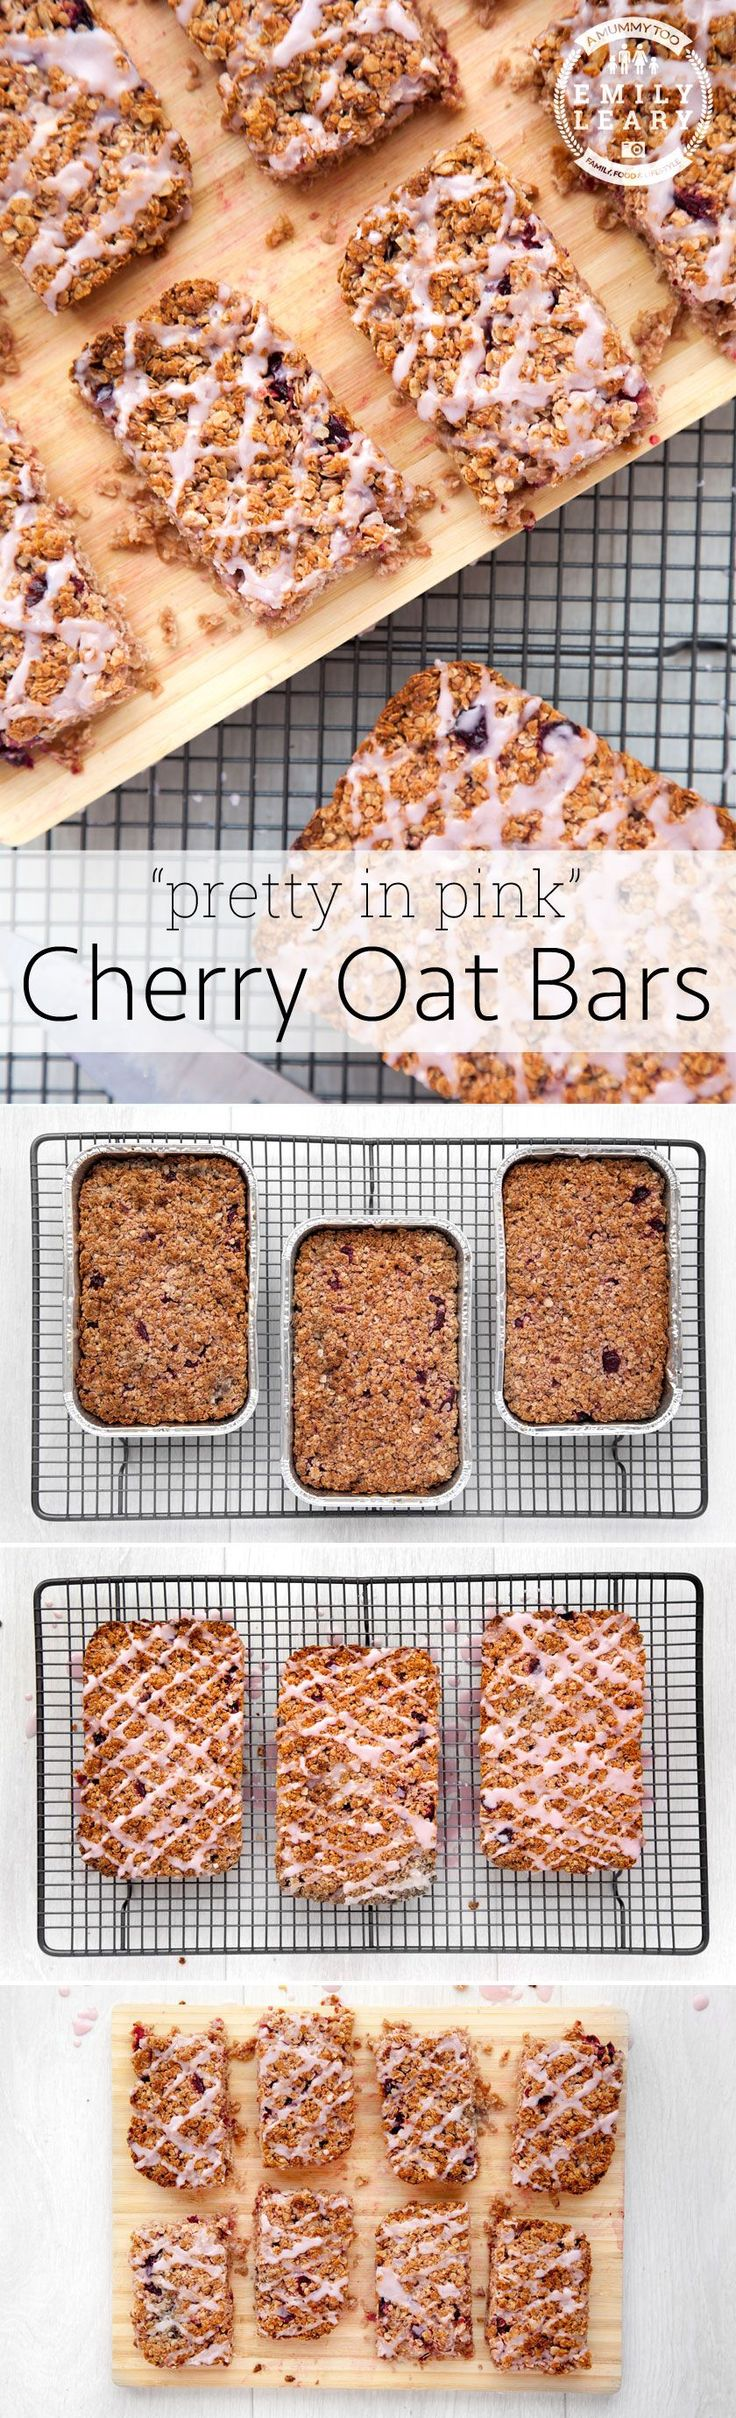 Easy, pretty and delicious cherry oat bars. Great fun to make with kids.